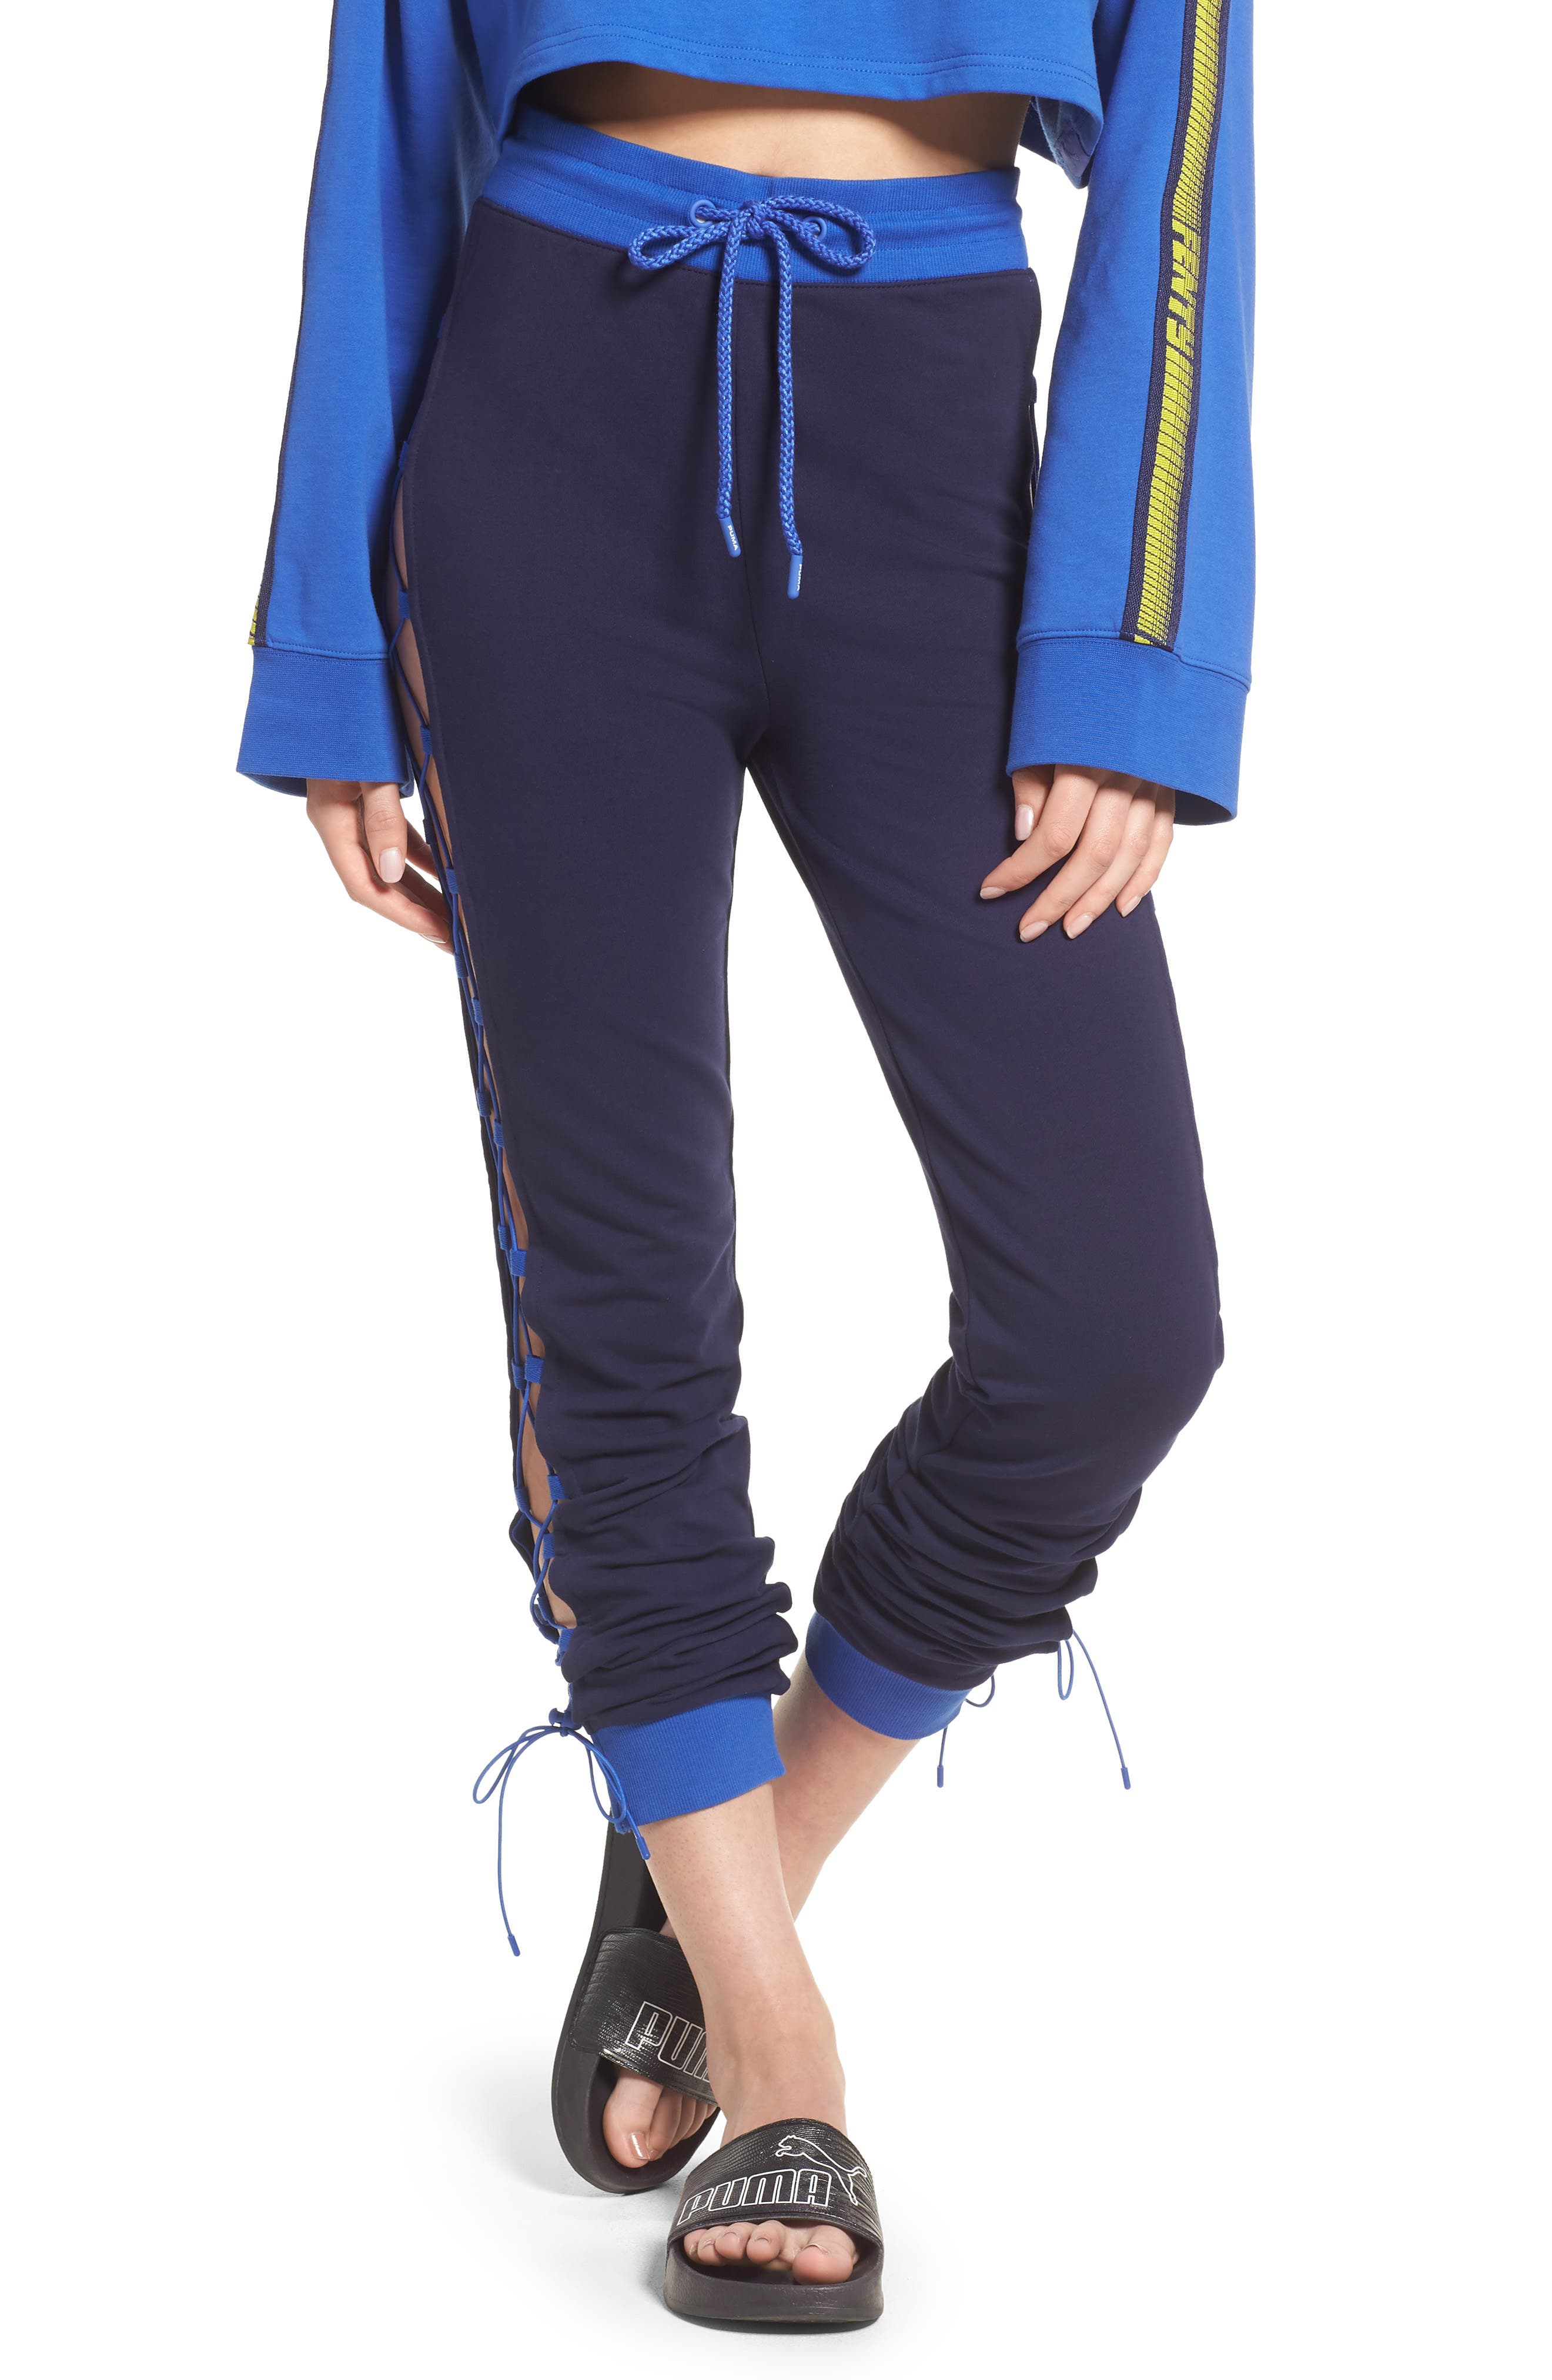 FENTY PUMA by Rihanna Lace-Up Sweatpants,                             Main thumbnail 1, color,                             Evening Blue